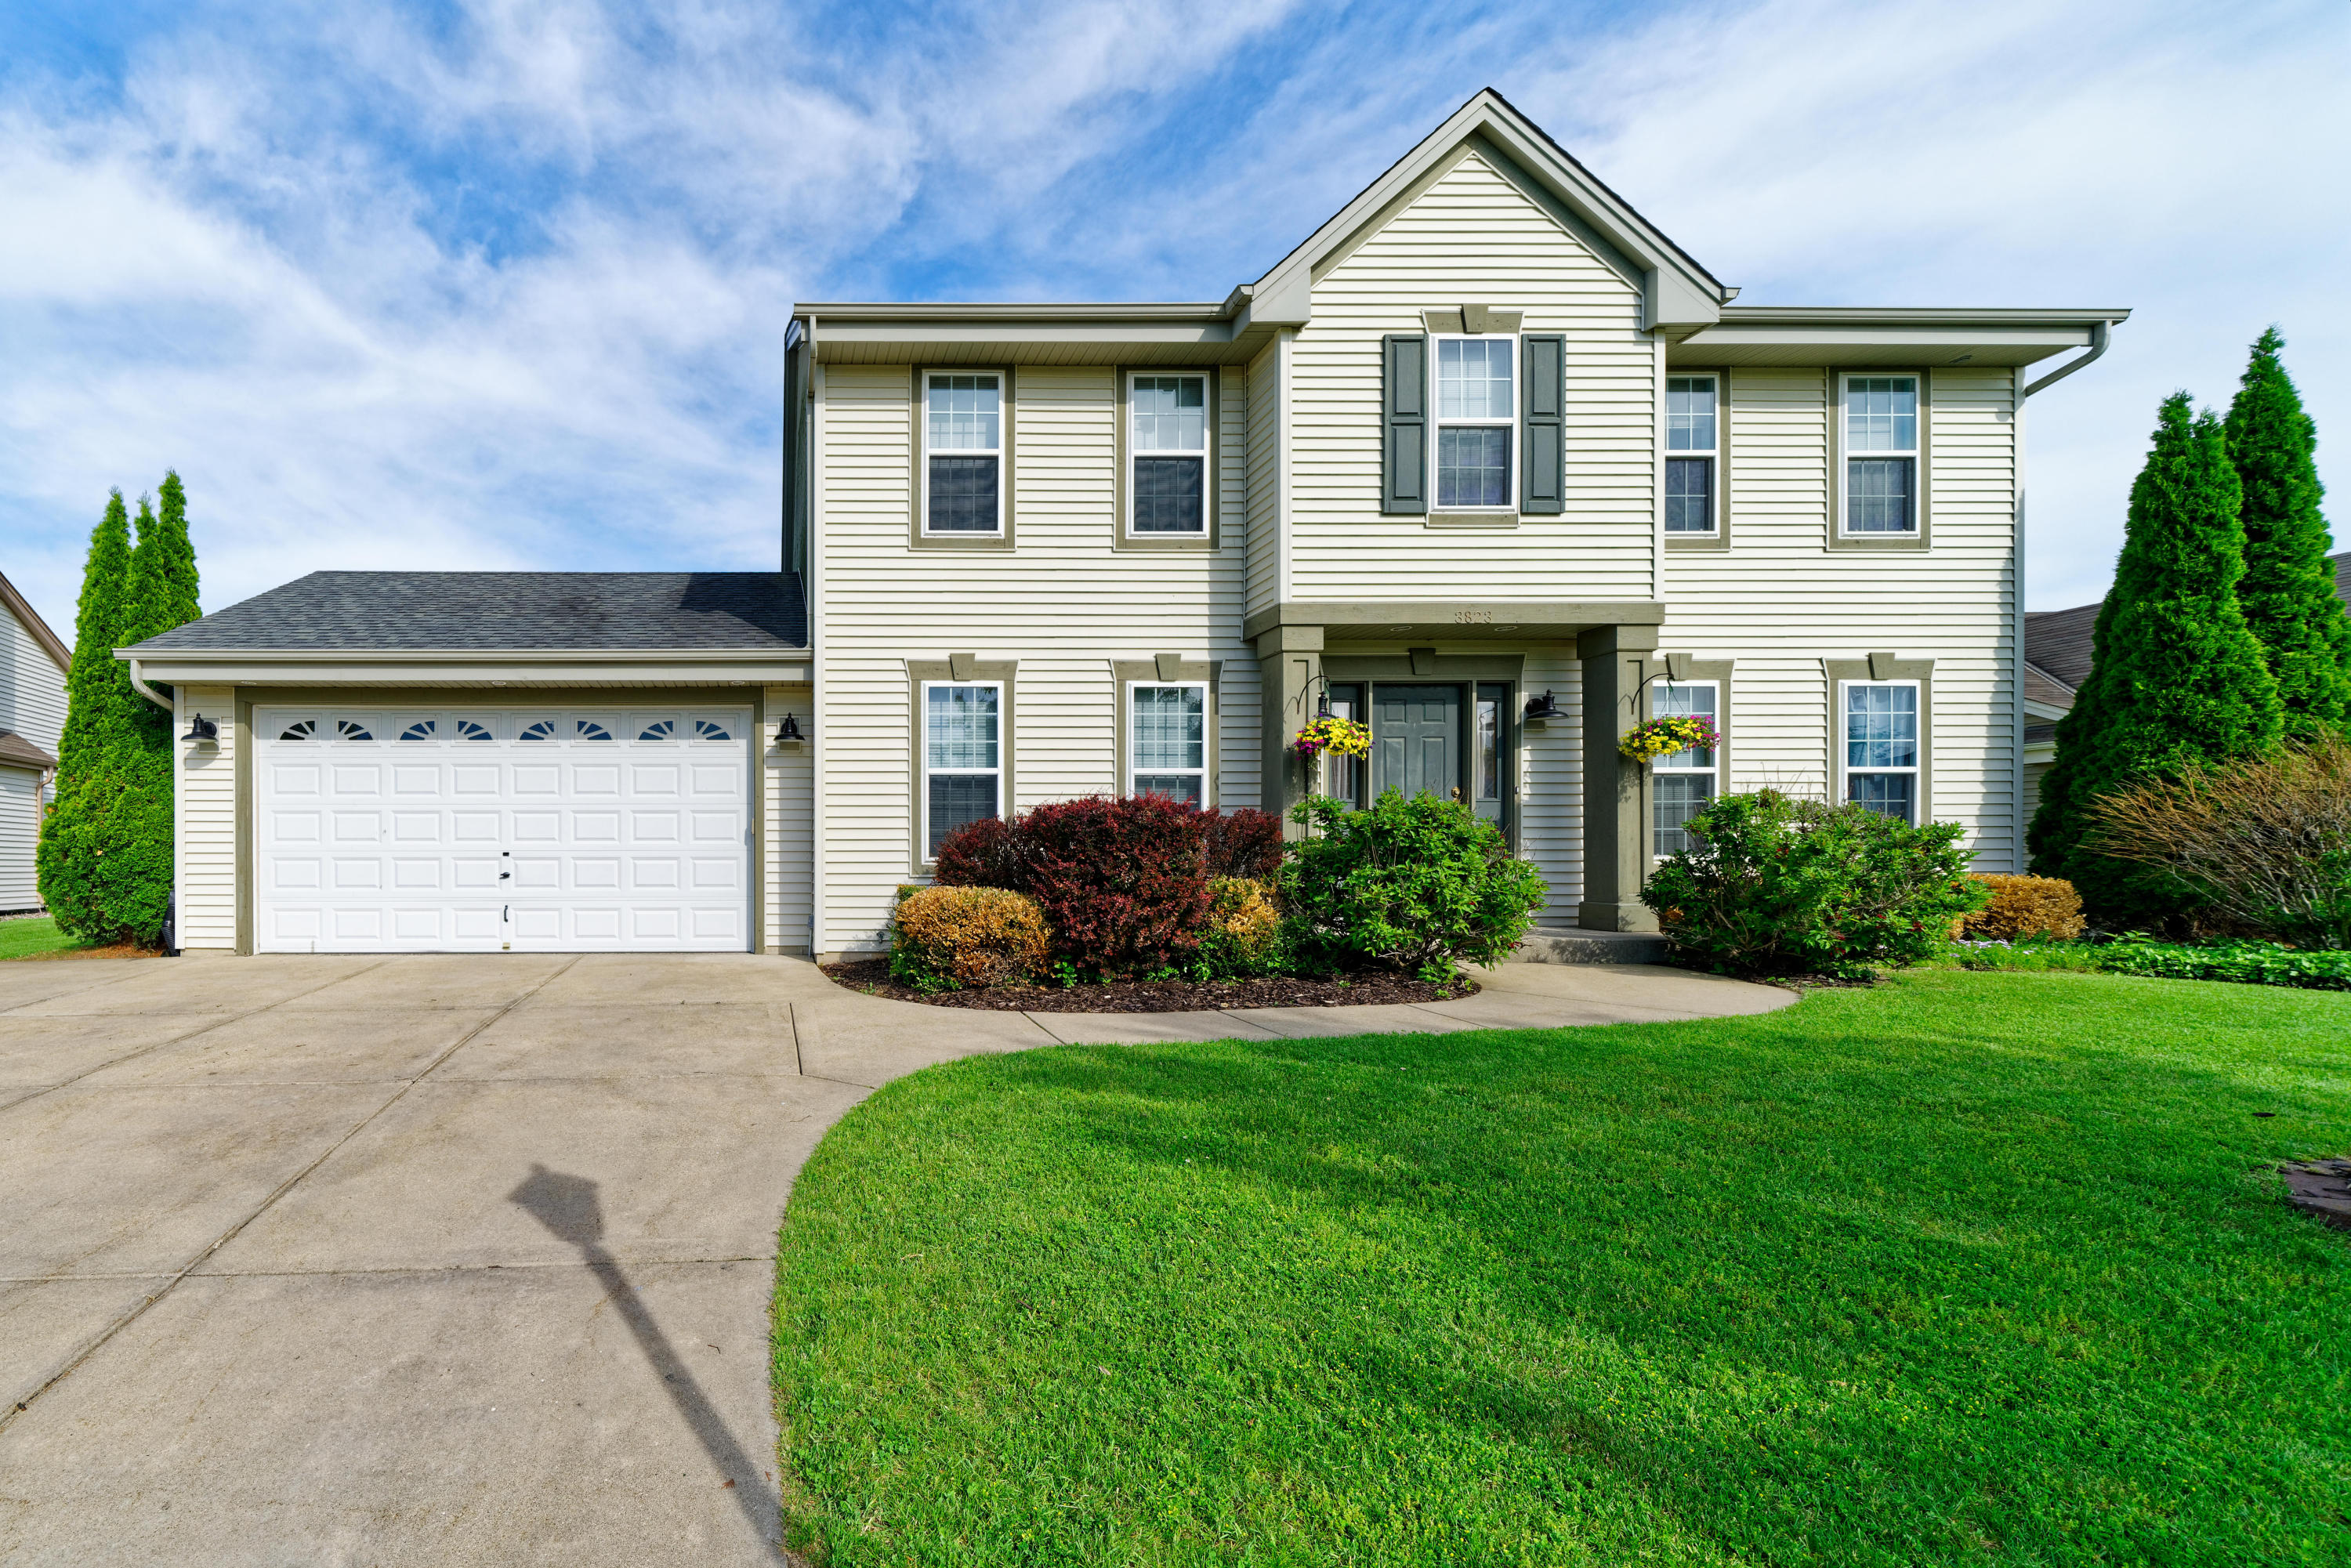 3823 Rivers Crossing Dr, Waukesha, Wisconsin 53189, 3 Bedrooms Bedrooms, ,3 BathroomsBathrooms,Single-Family,For Sale,Rivers Crossing Dr,1641291